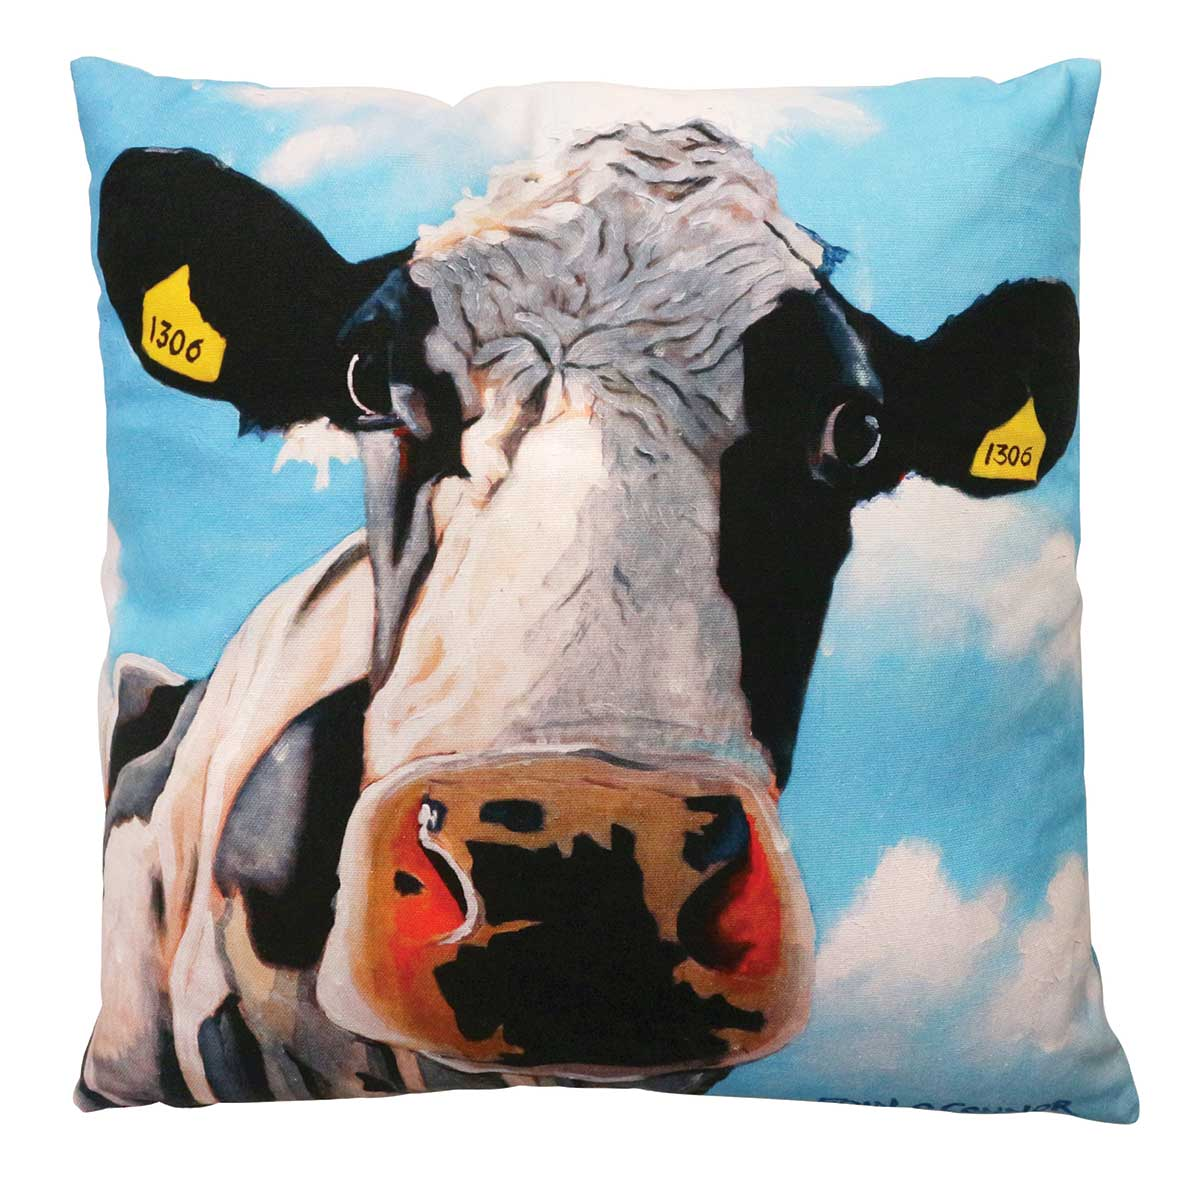 Tinahely Girl 45cm x 45cm Luxury cushion